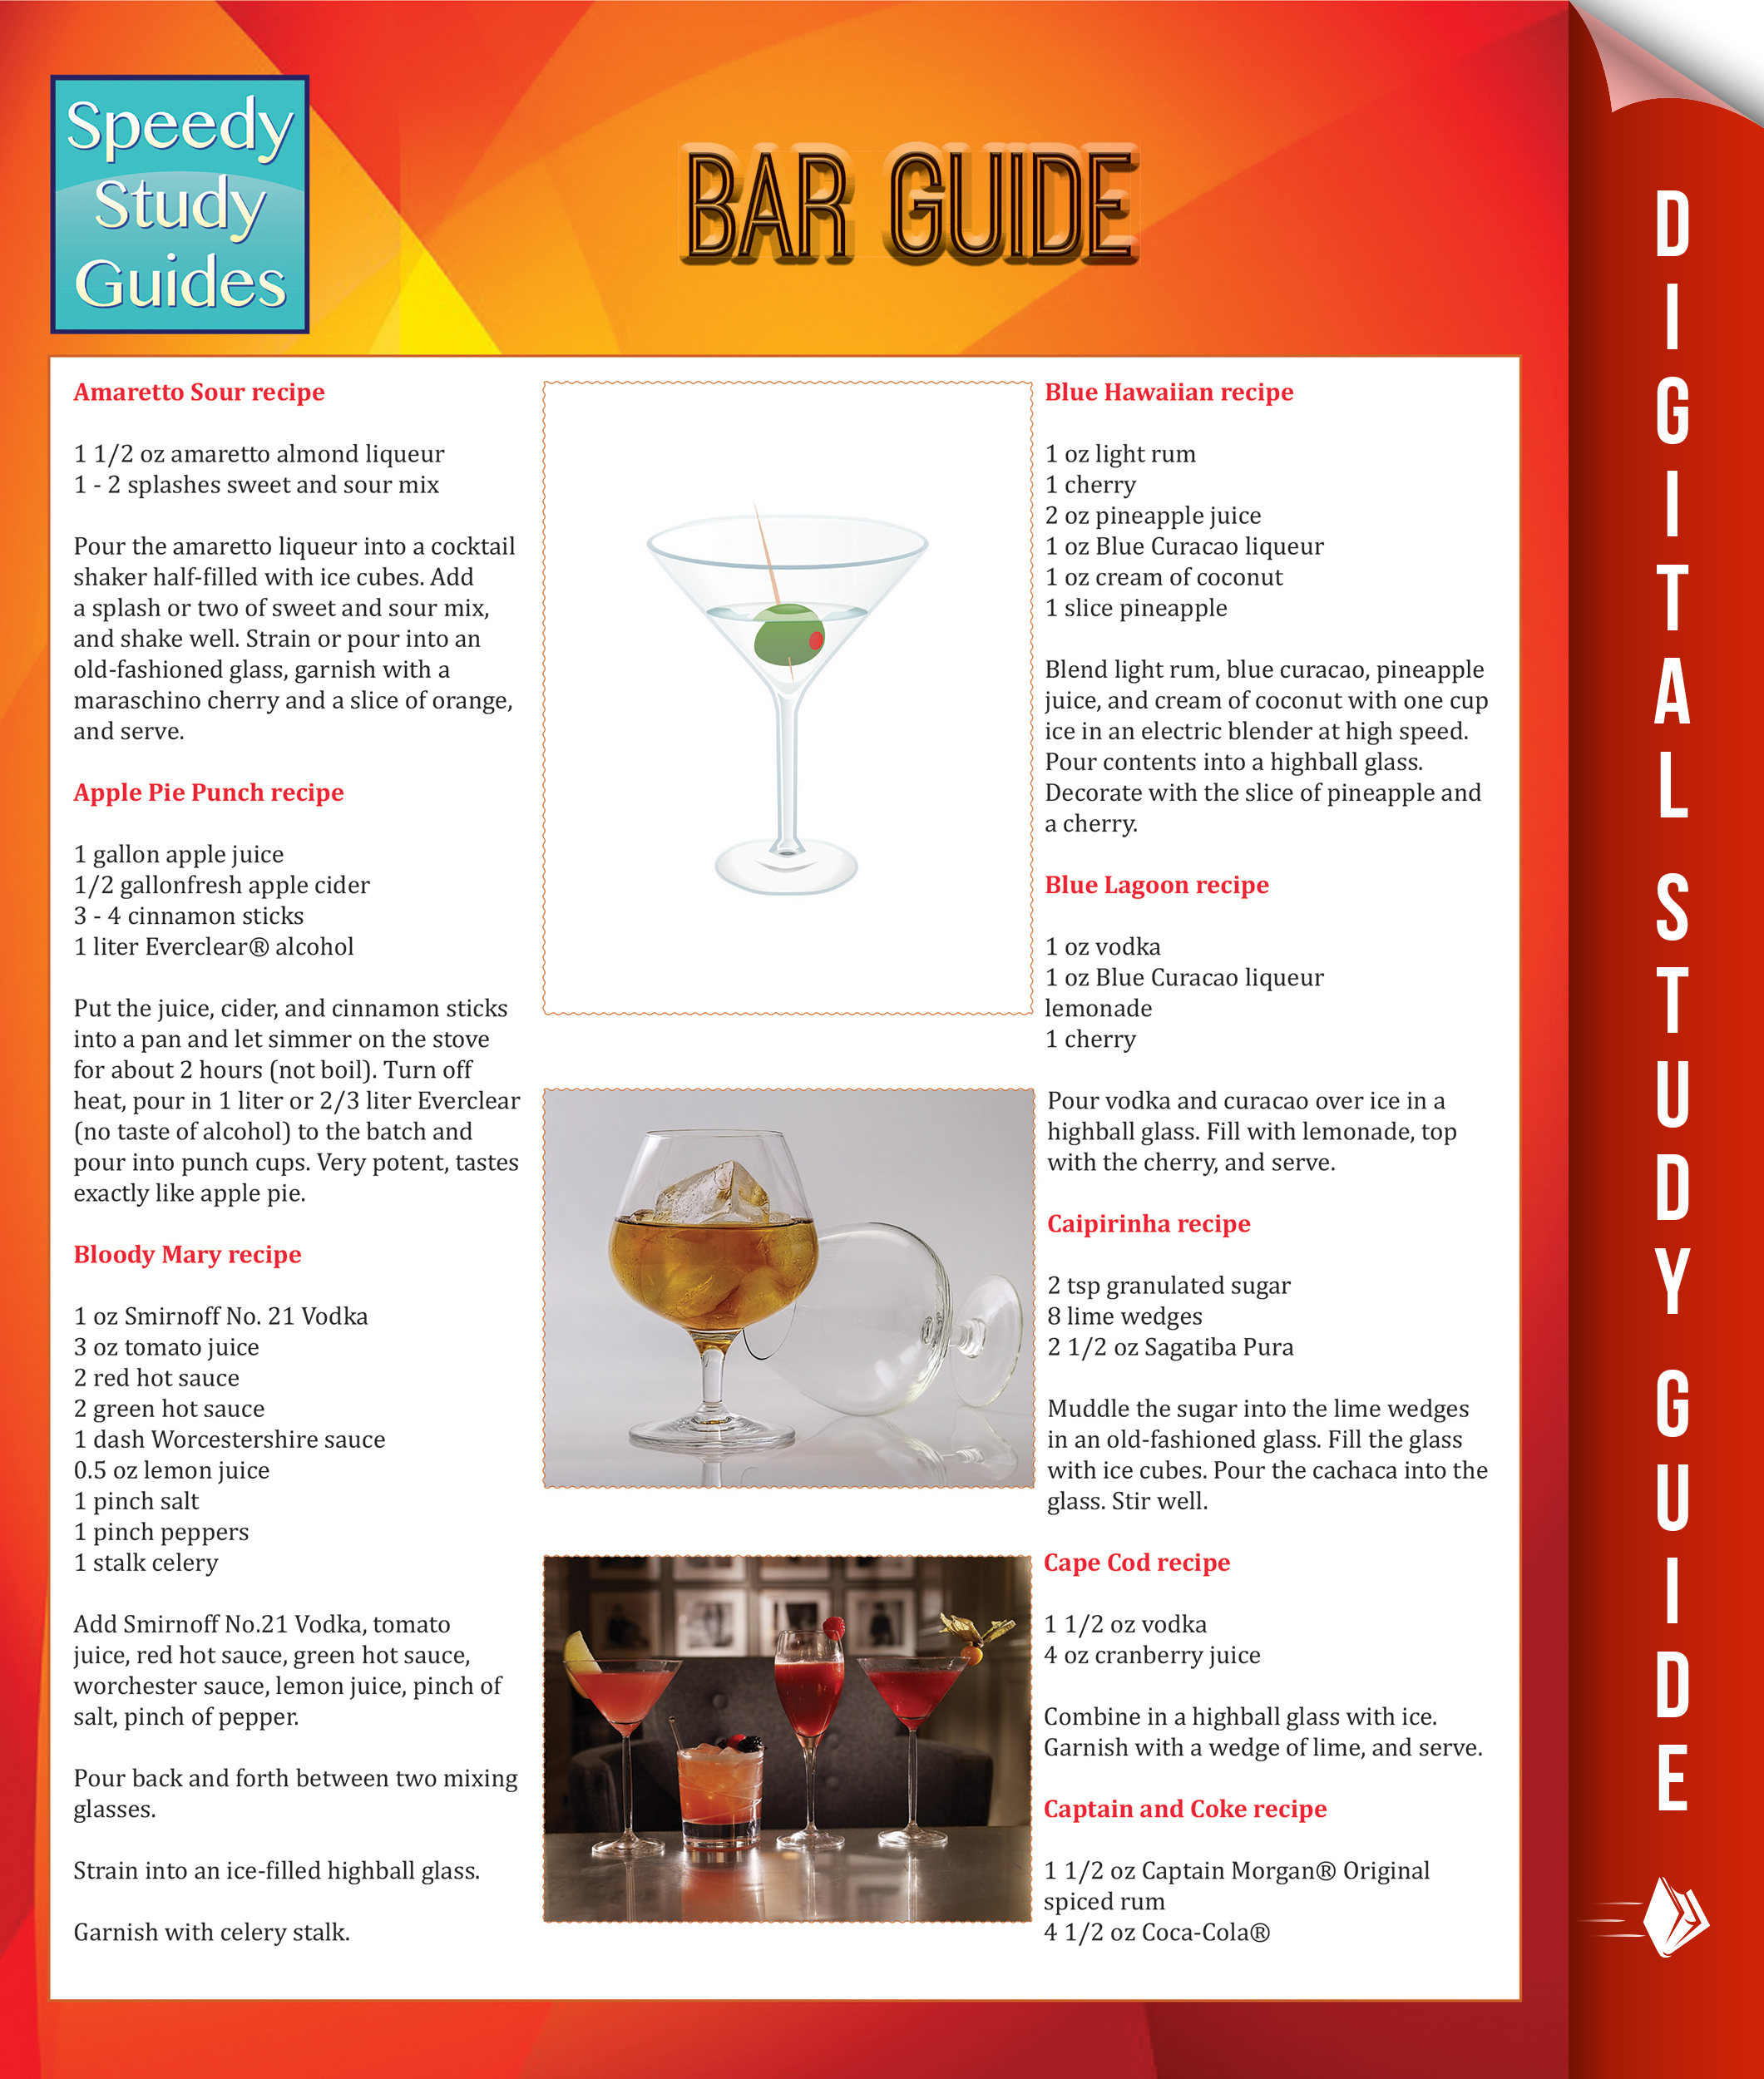 Bar Guide (Speedy Study Guides)